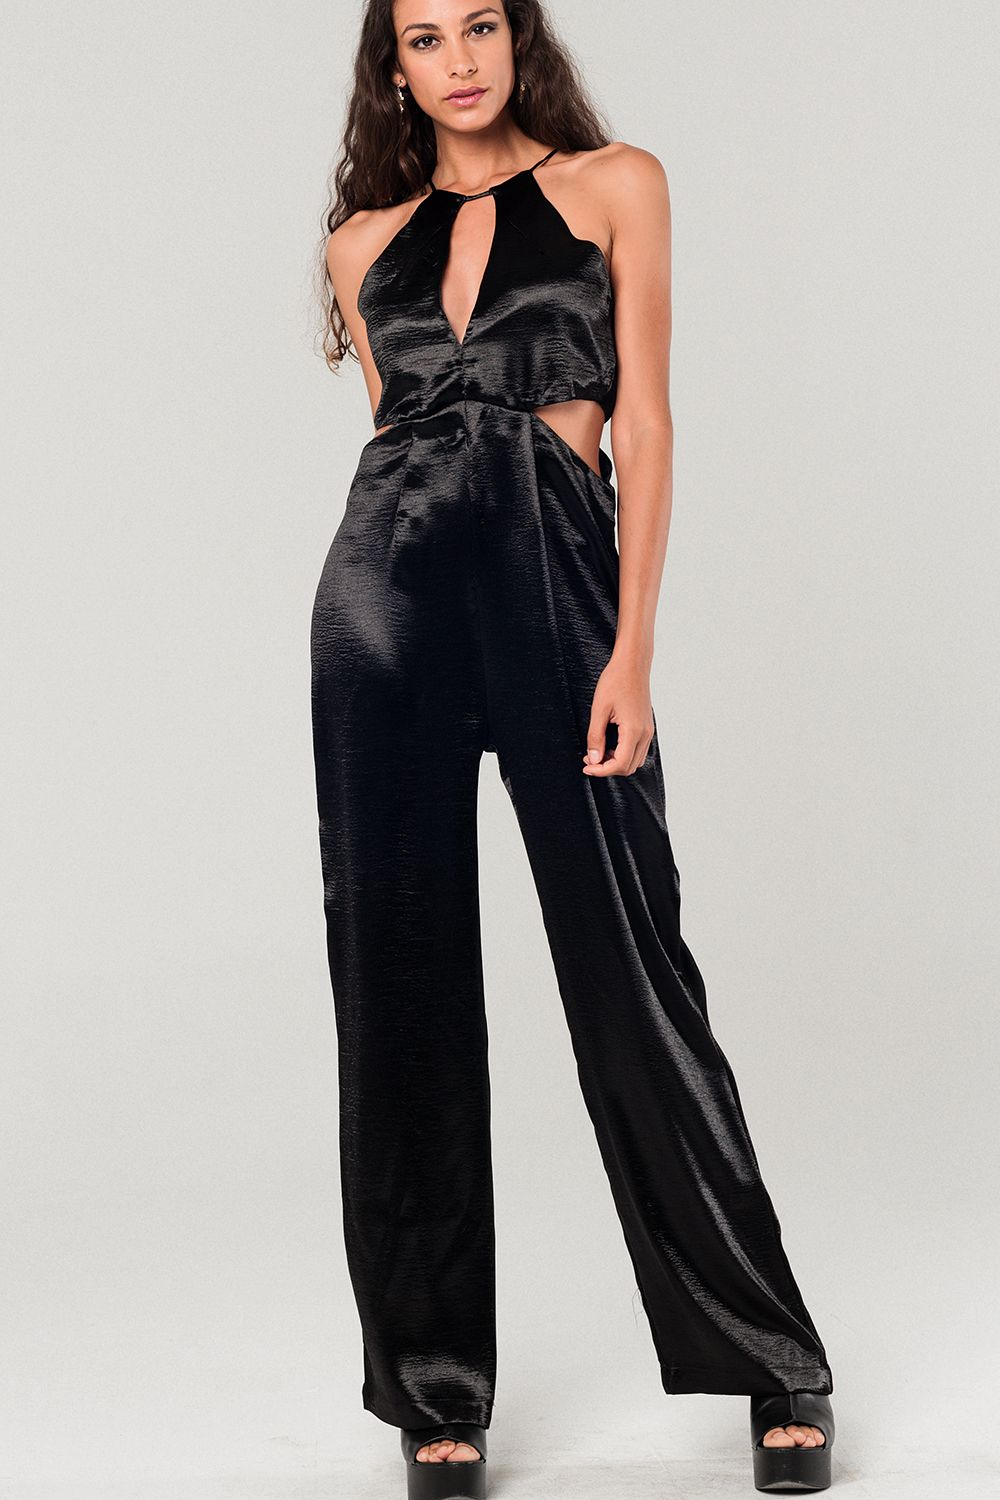 Metallic Black Jumpsuit With Cutout Details-Women - Apparel - Jumpsuits/Rompers-L-Keyomi-Sook